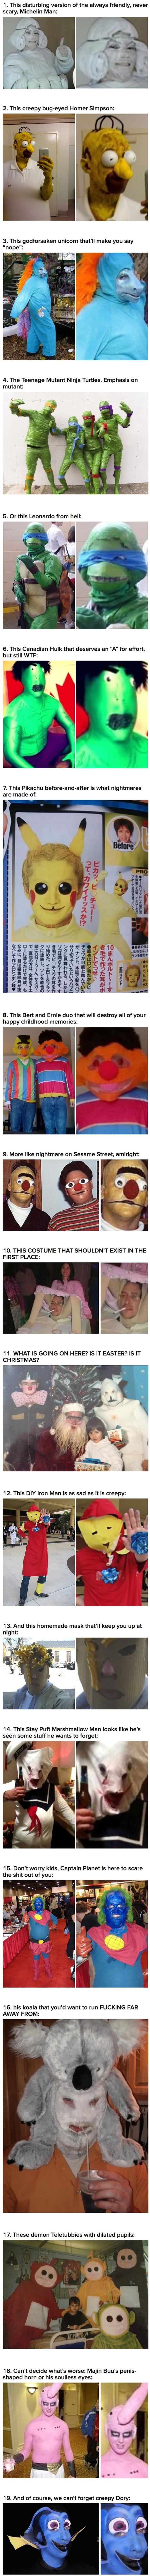 Halloween costumes that failed so hard they値l scare you sh*tless